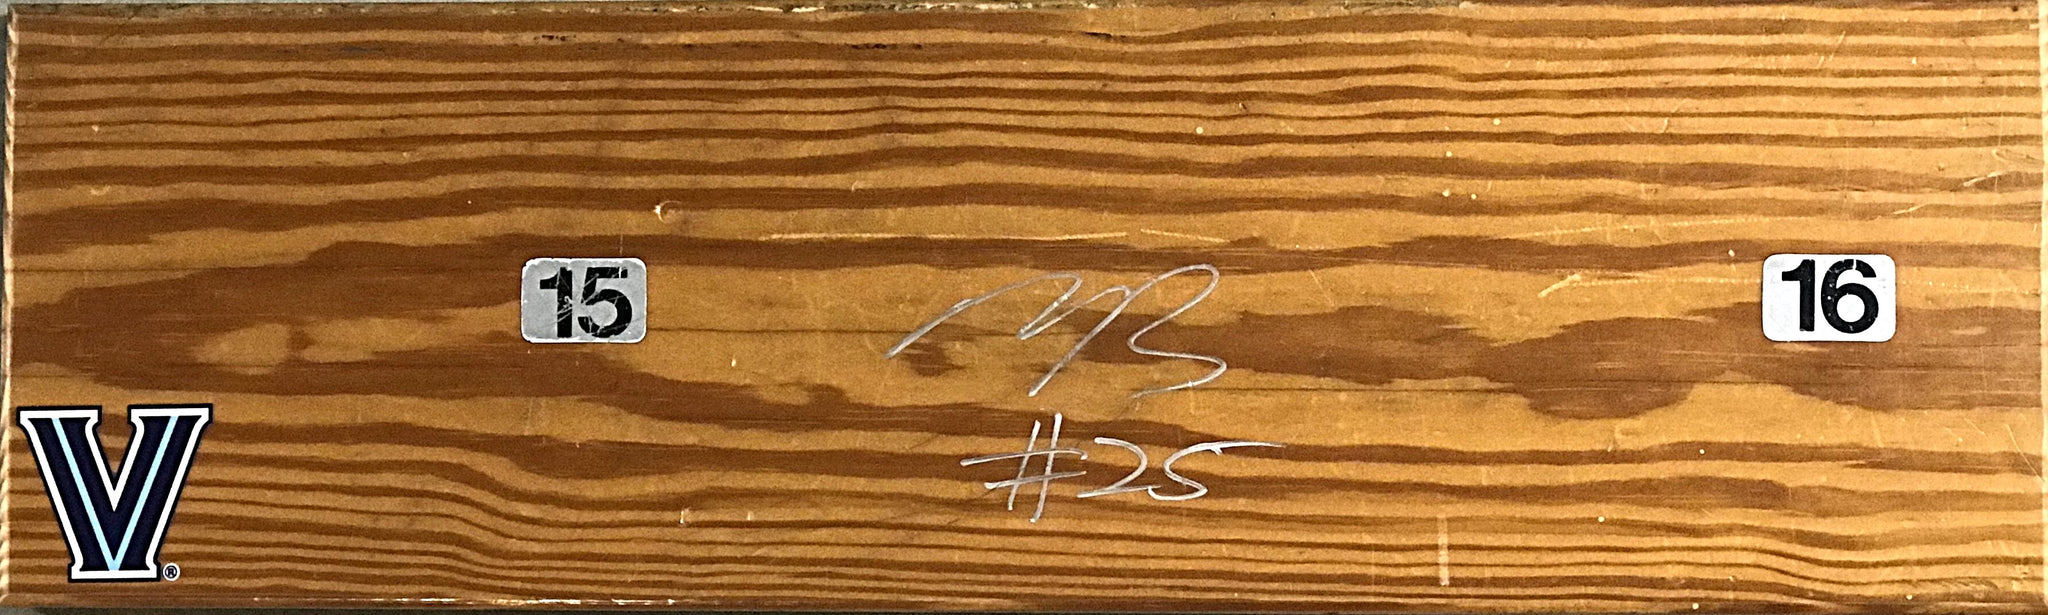 Mikal Bridges Signed Bench